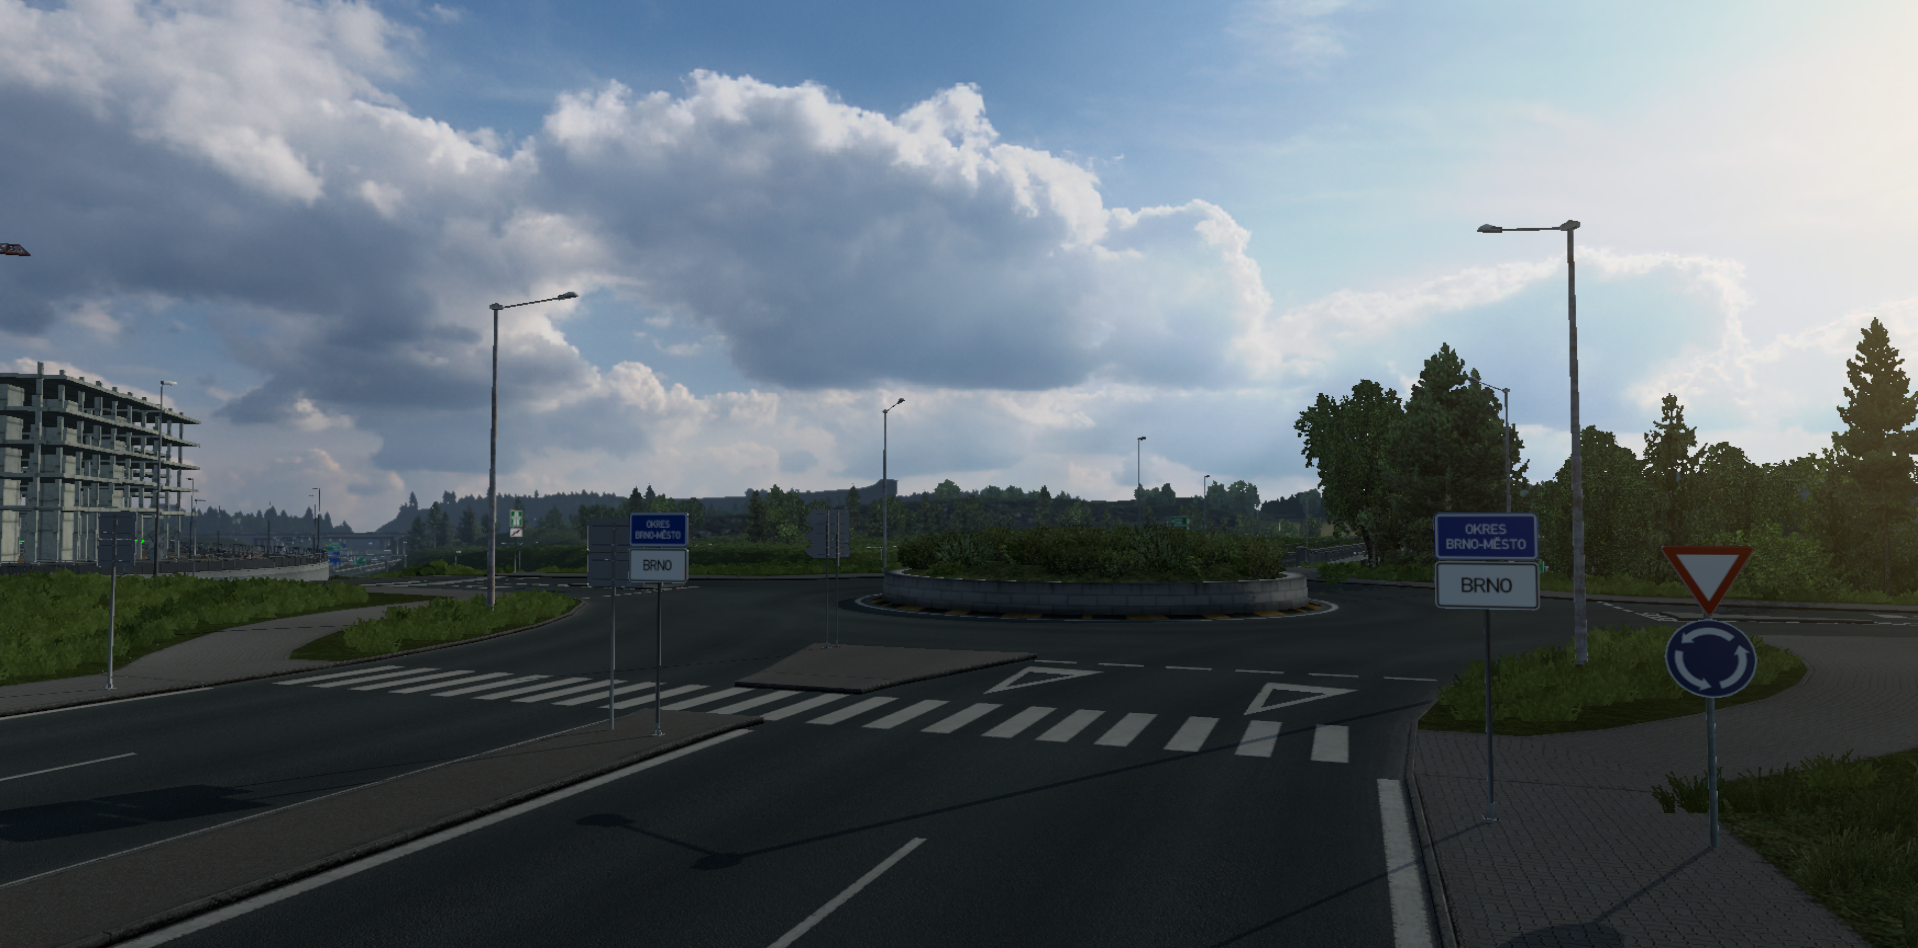 ets2_20210606_172626_00.png